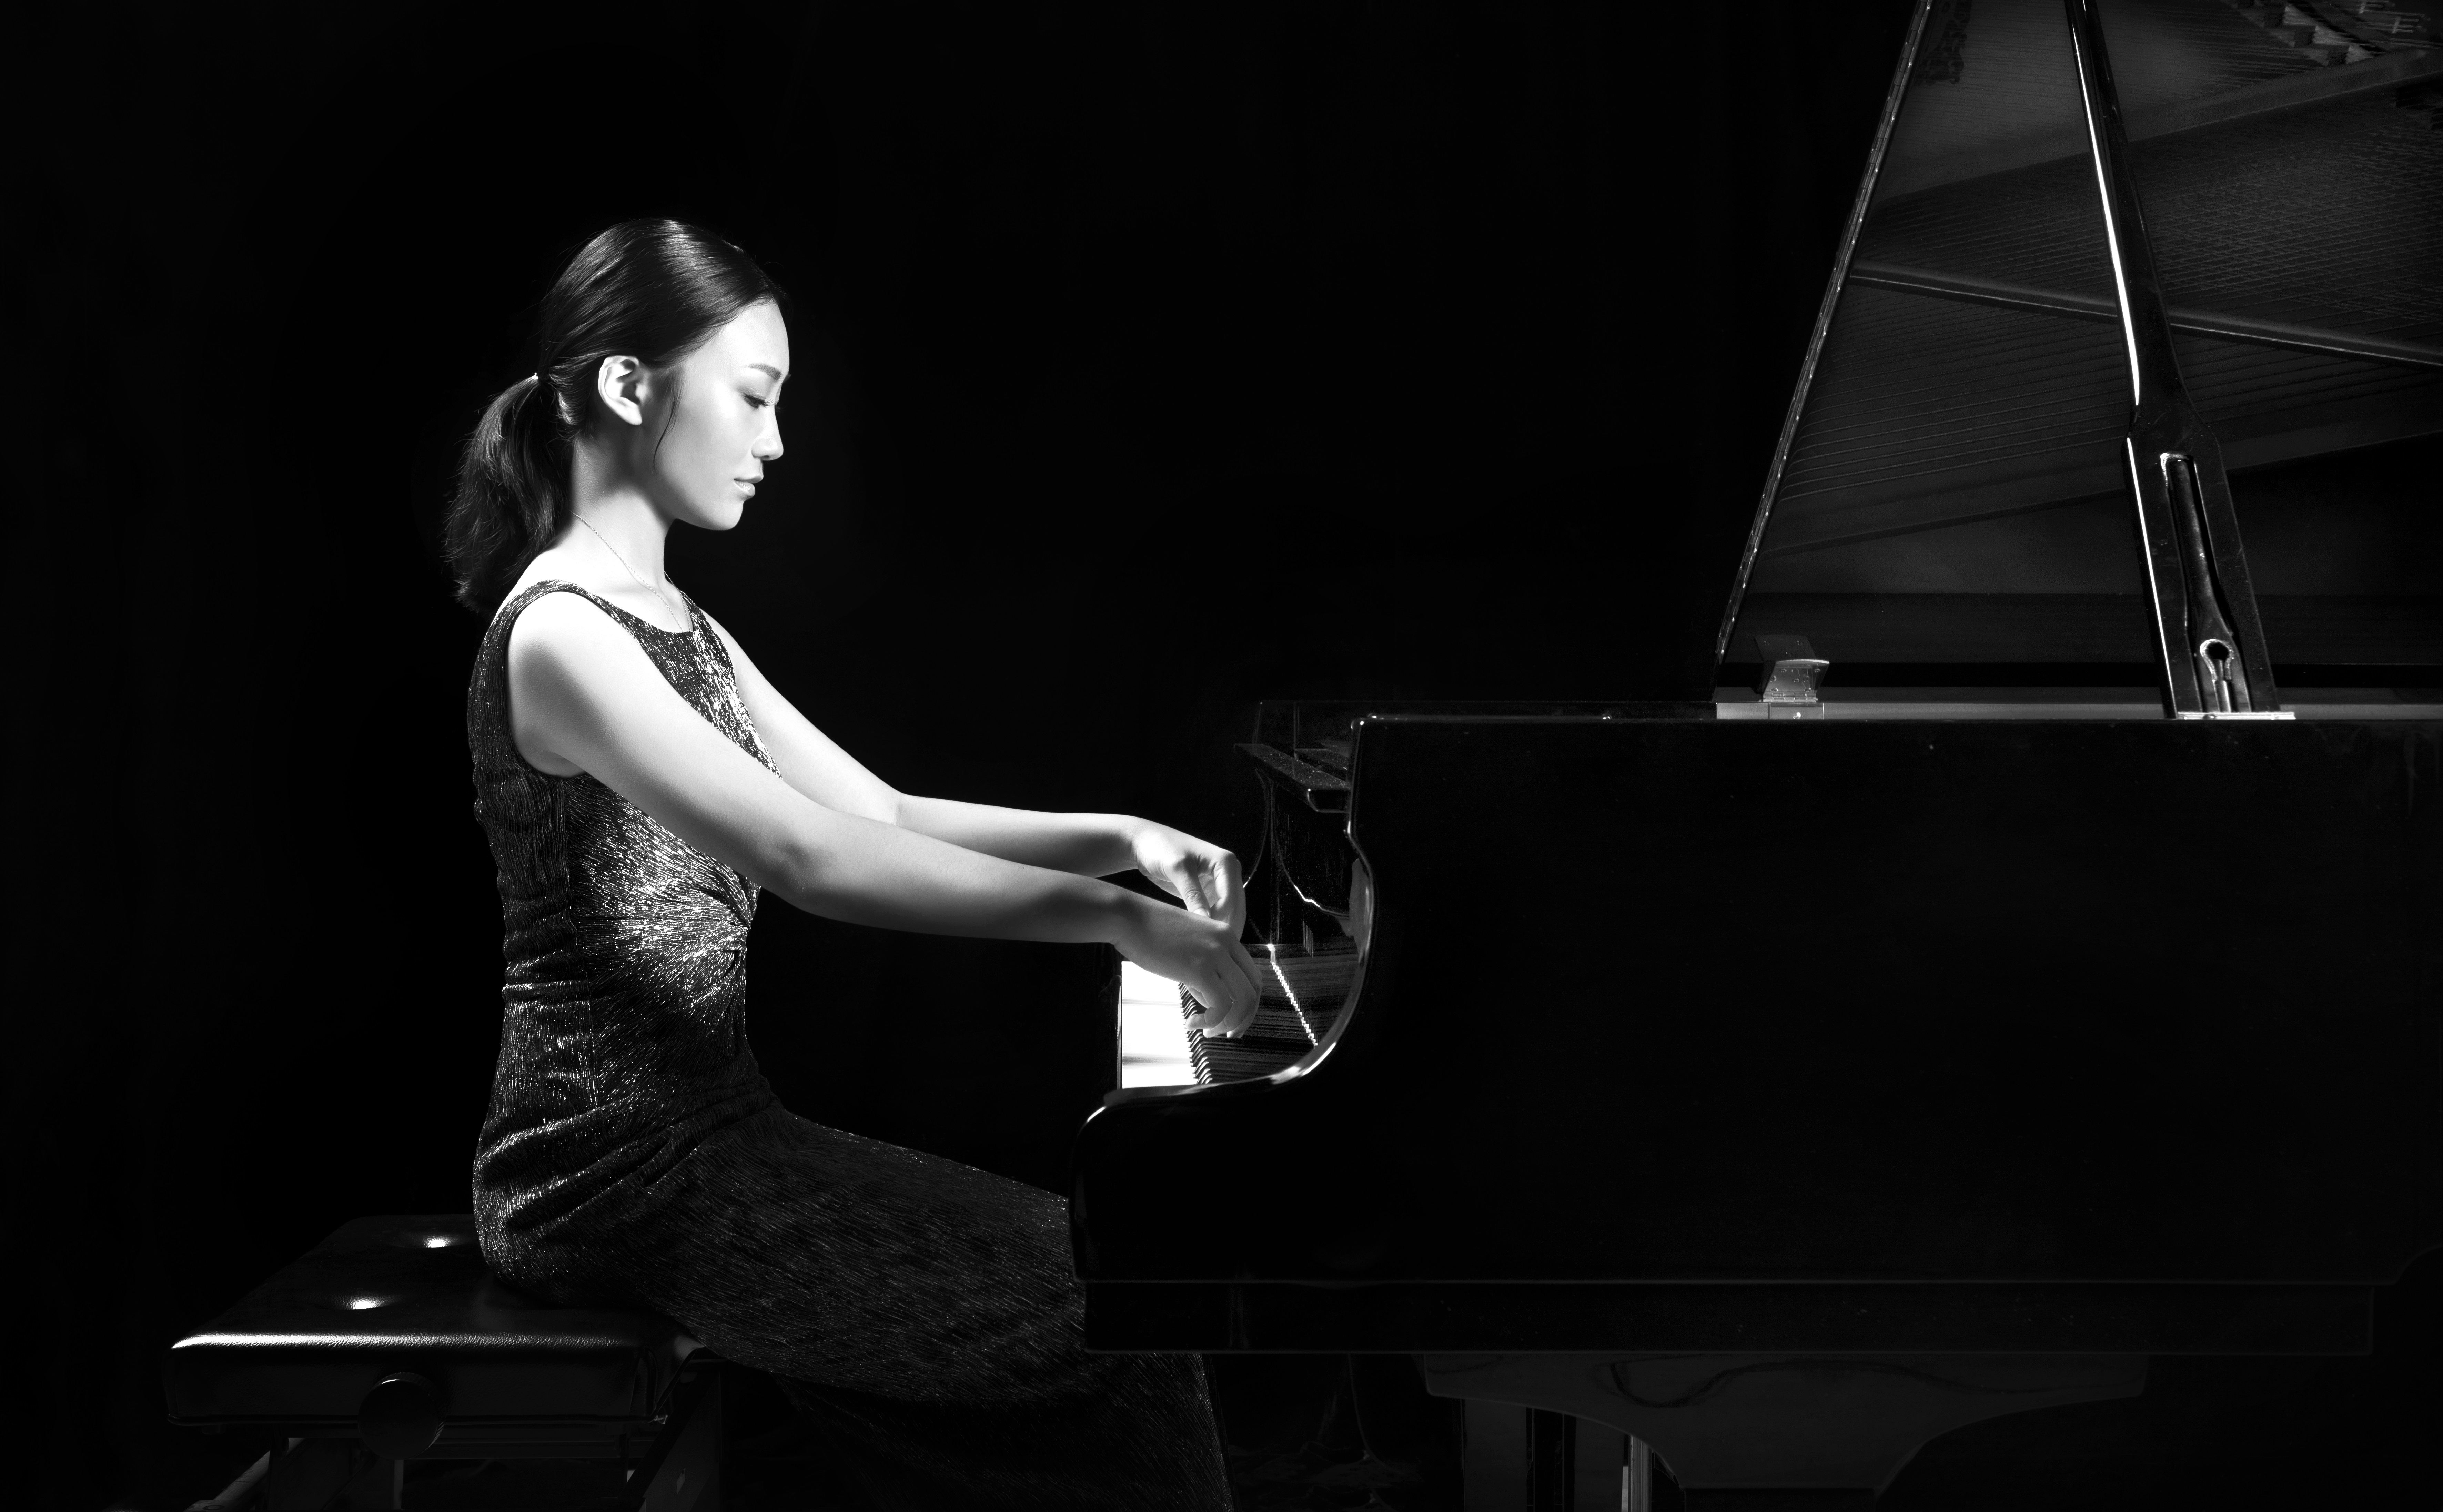 Live-Stream Salon Concert: Pianist Wynona Wang at The Parrrish Art Museum